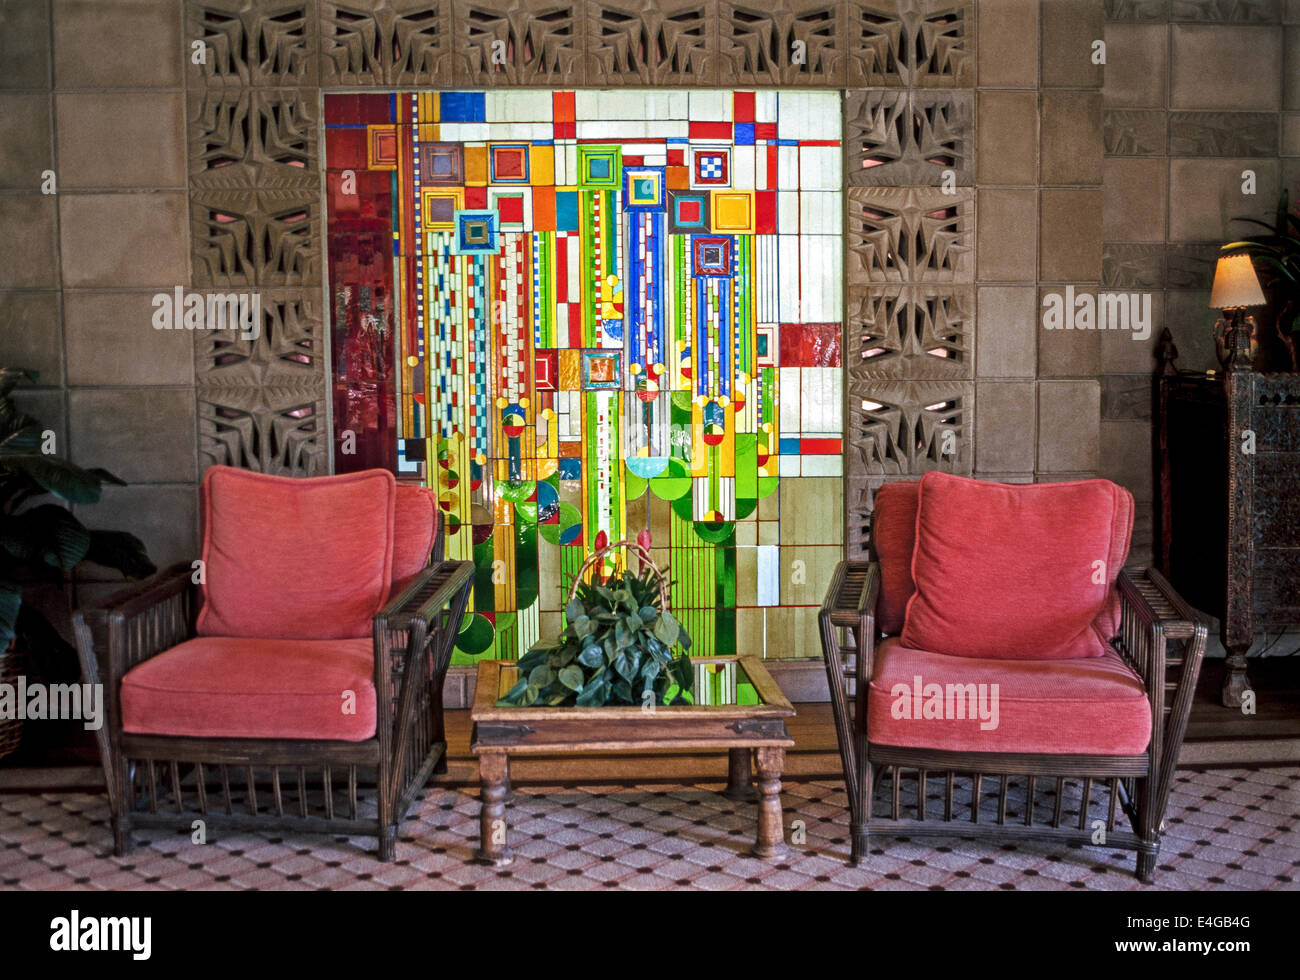 This colorful 1970s stained-glass window by architect Frank Lloyd Wright greets guests at the Arizona Biltmore Hotel - Stock Image